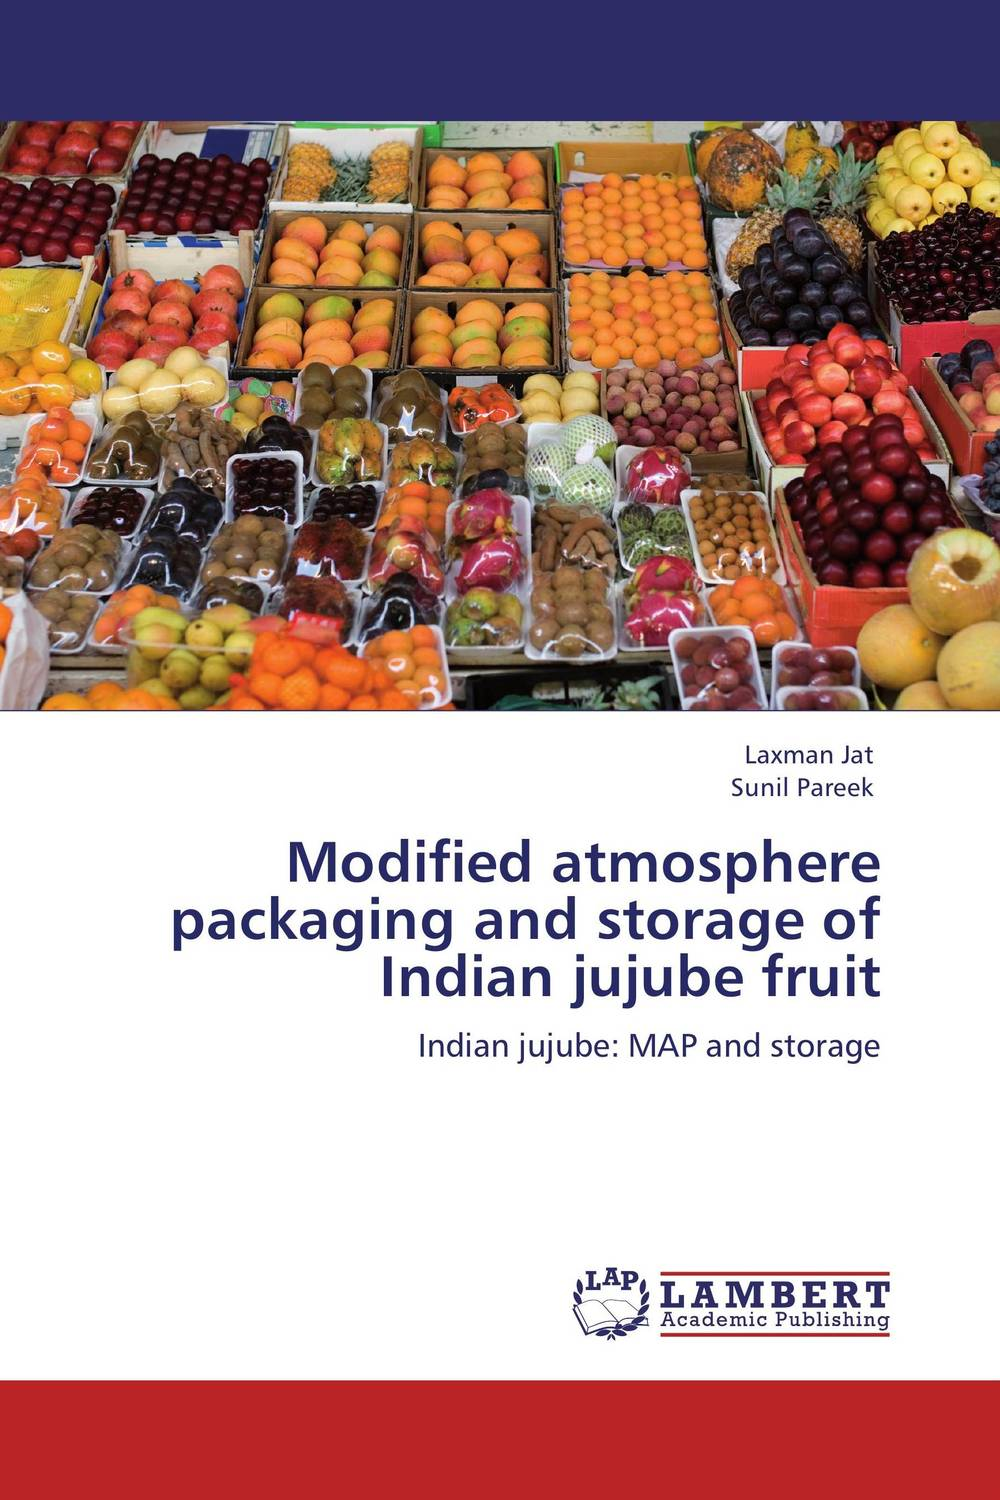 Modified atmosphere packaging and storage of Indian jujube fruit effect of fruits of opuntia ficus indica on hemolytic anemia